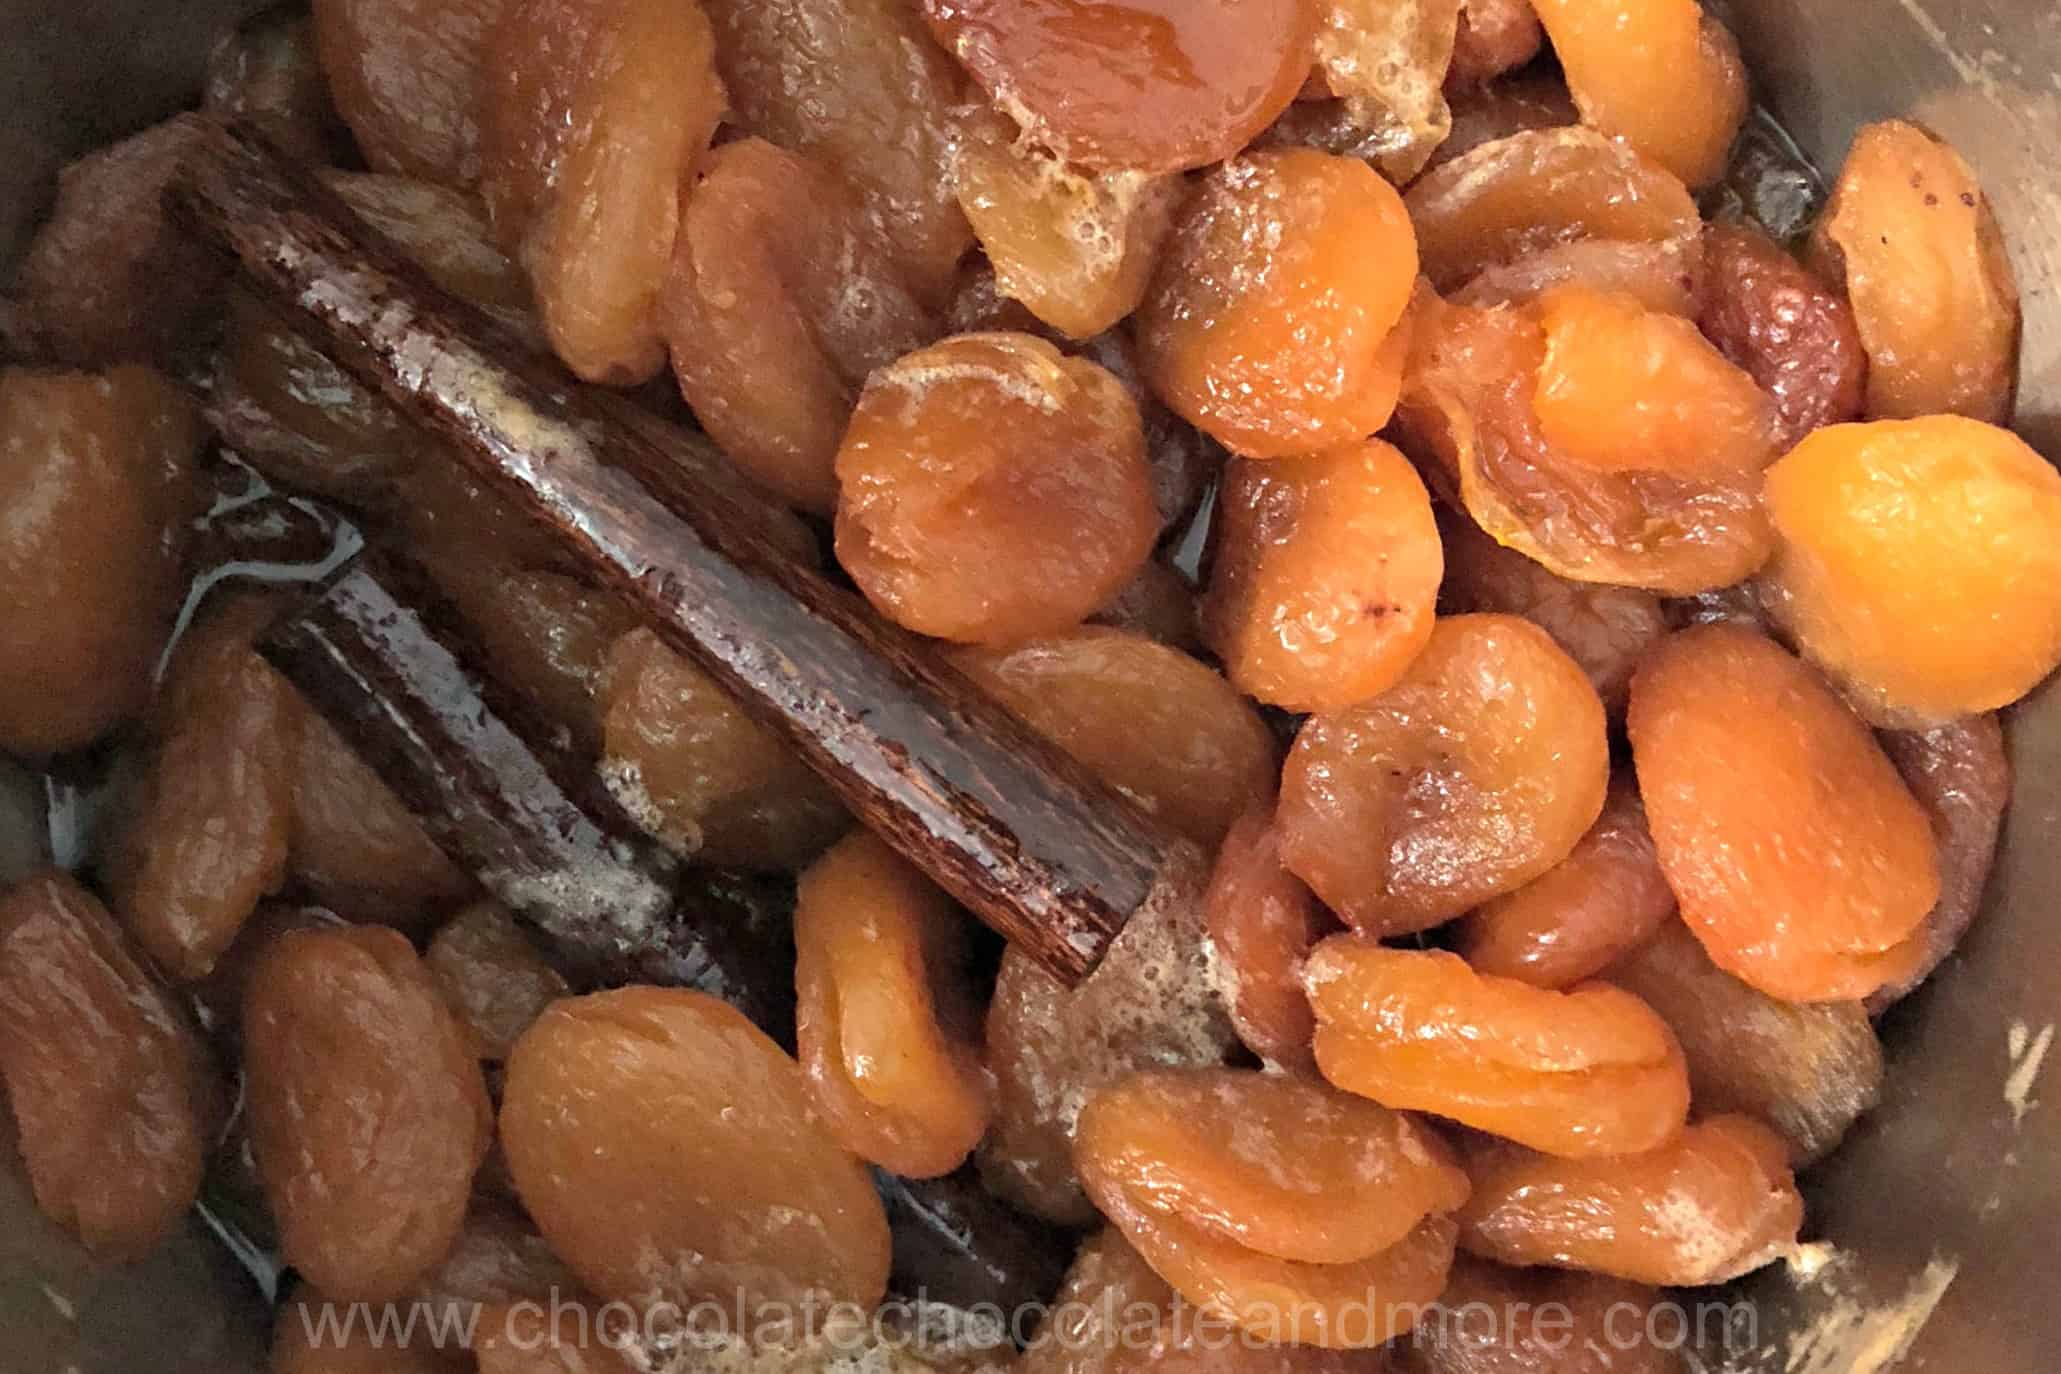 a pot is full of dried apricots soaking with cinnamon sticks